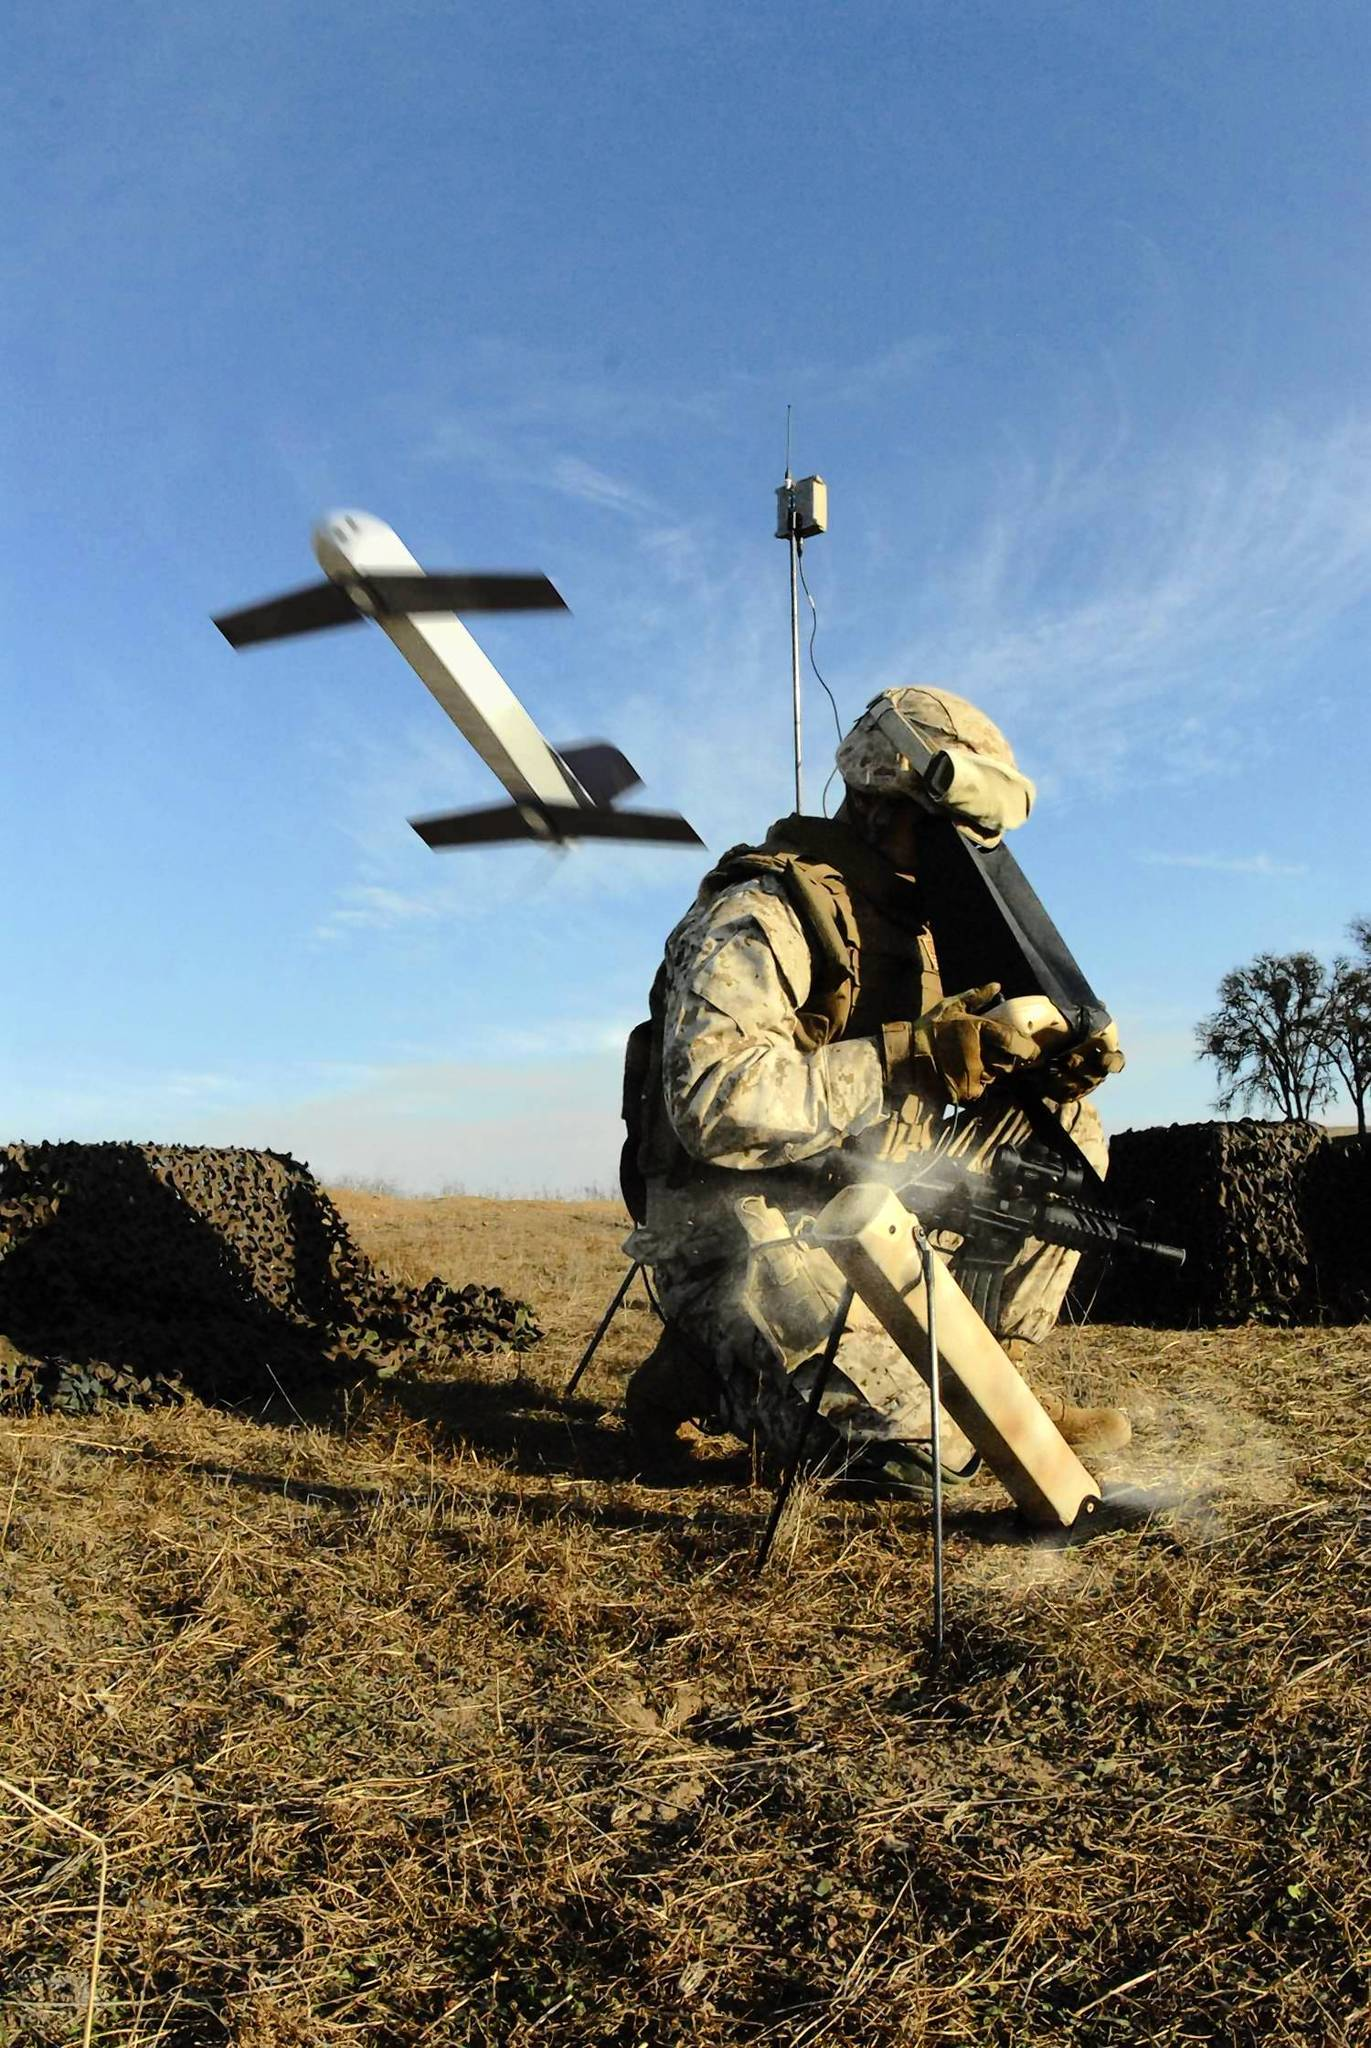 The Switchblade drone is designed to fit into a soldier's rucksack. It weighs less than 6 pounds and can take out a sniper on a rooftop, without blasting the building to bits. The drone also enables soldiers in the field to identify and destroy targets much more quickly by eliminating the need to call in a strike from large drones that may be hundreds of miles away.